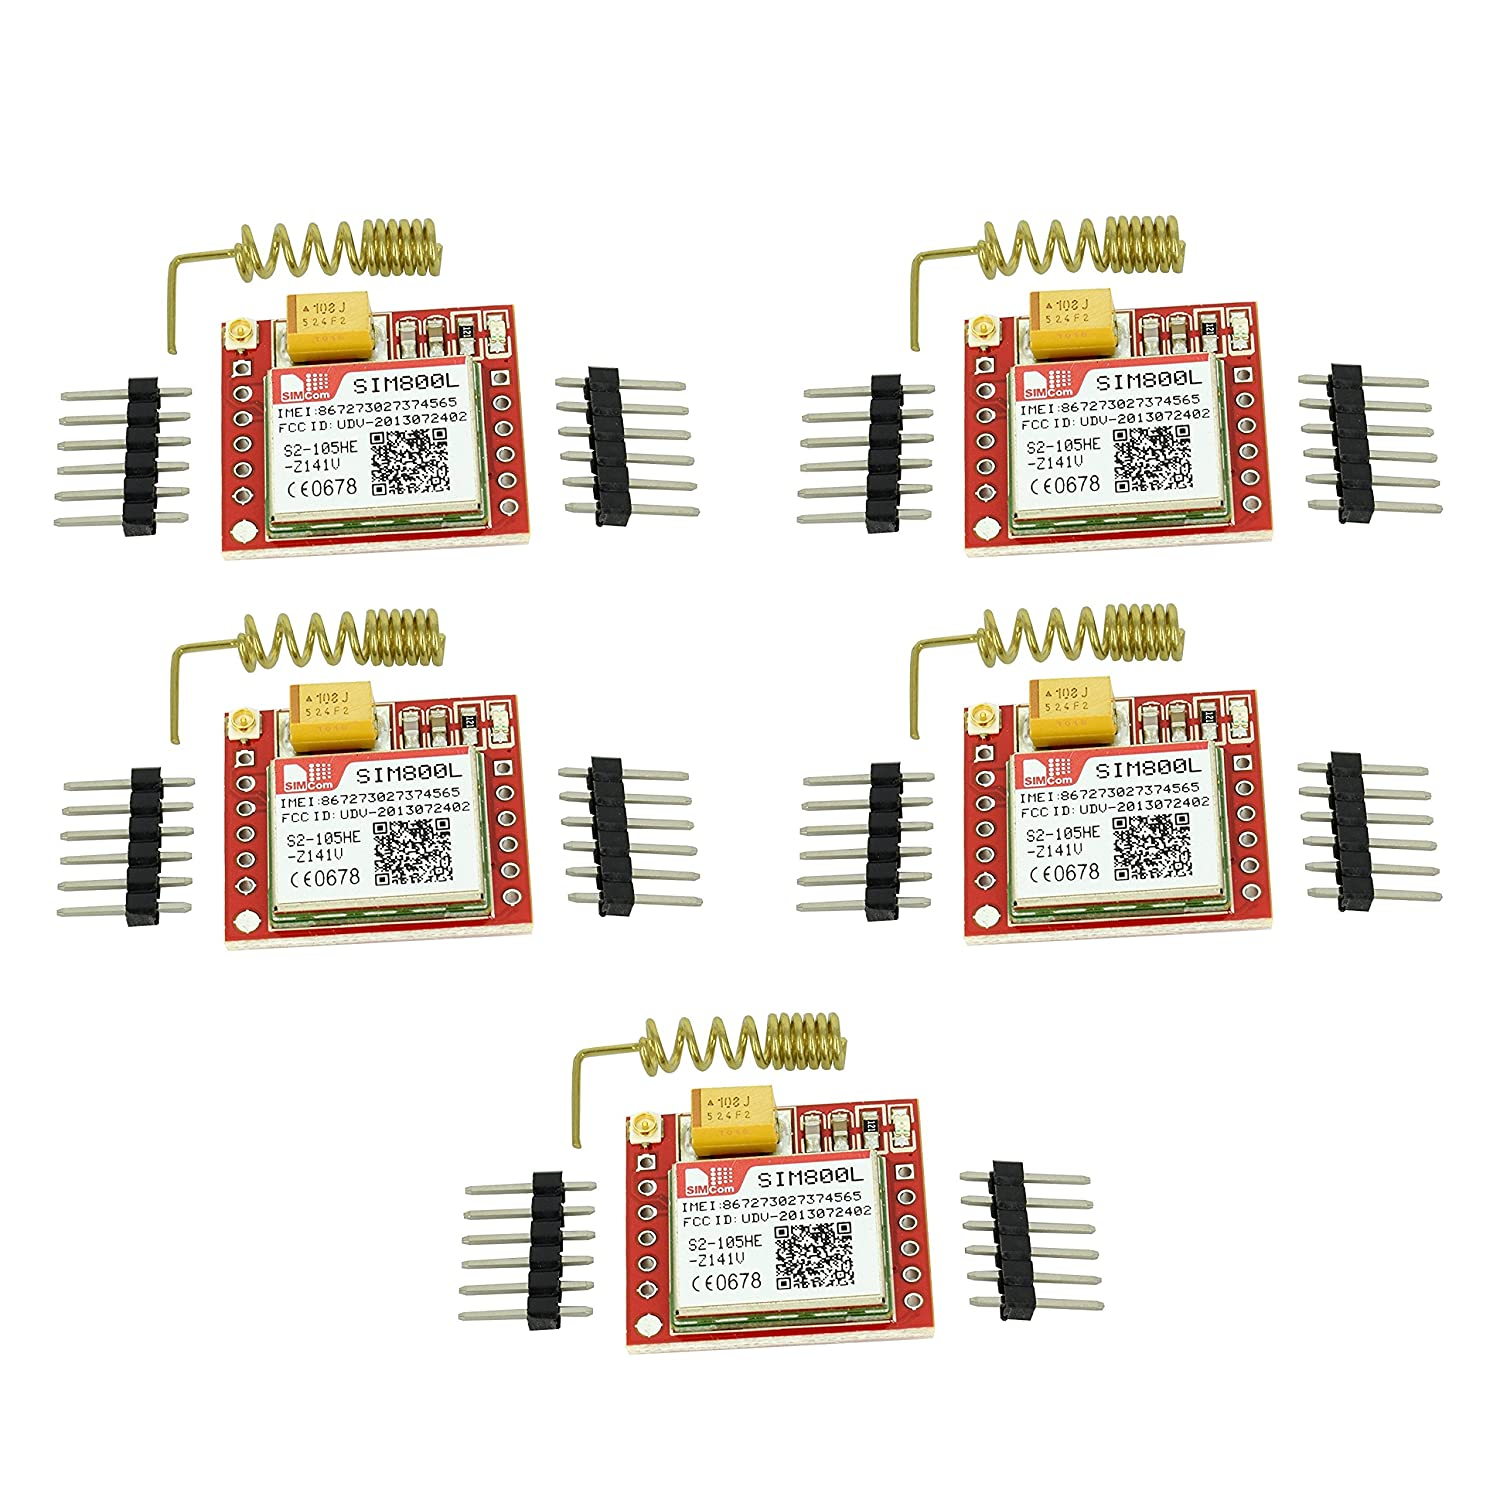 5pcs SIM800L Quad-Band GSM GPRS Module with PCB Antenna from Optimus